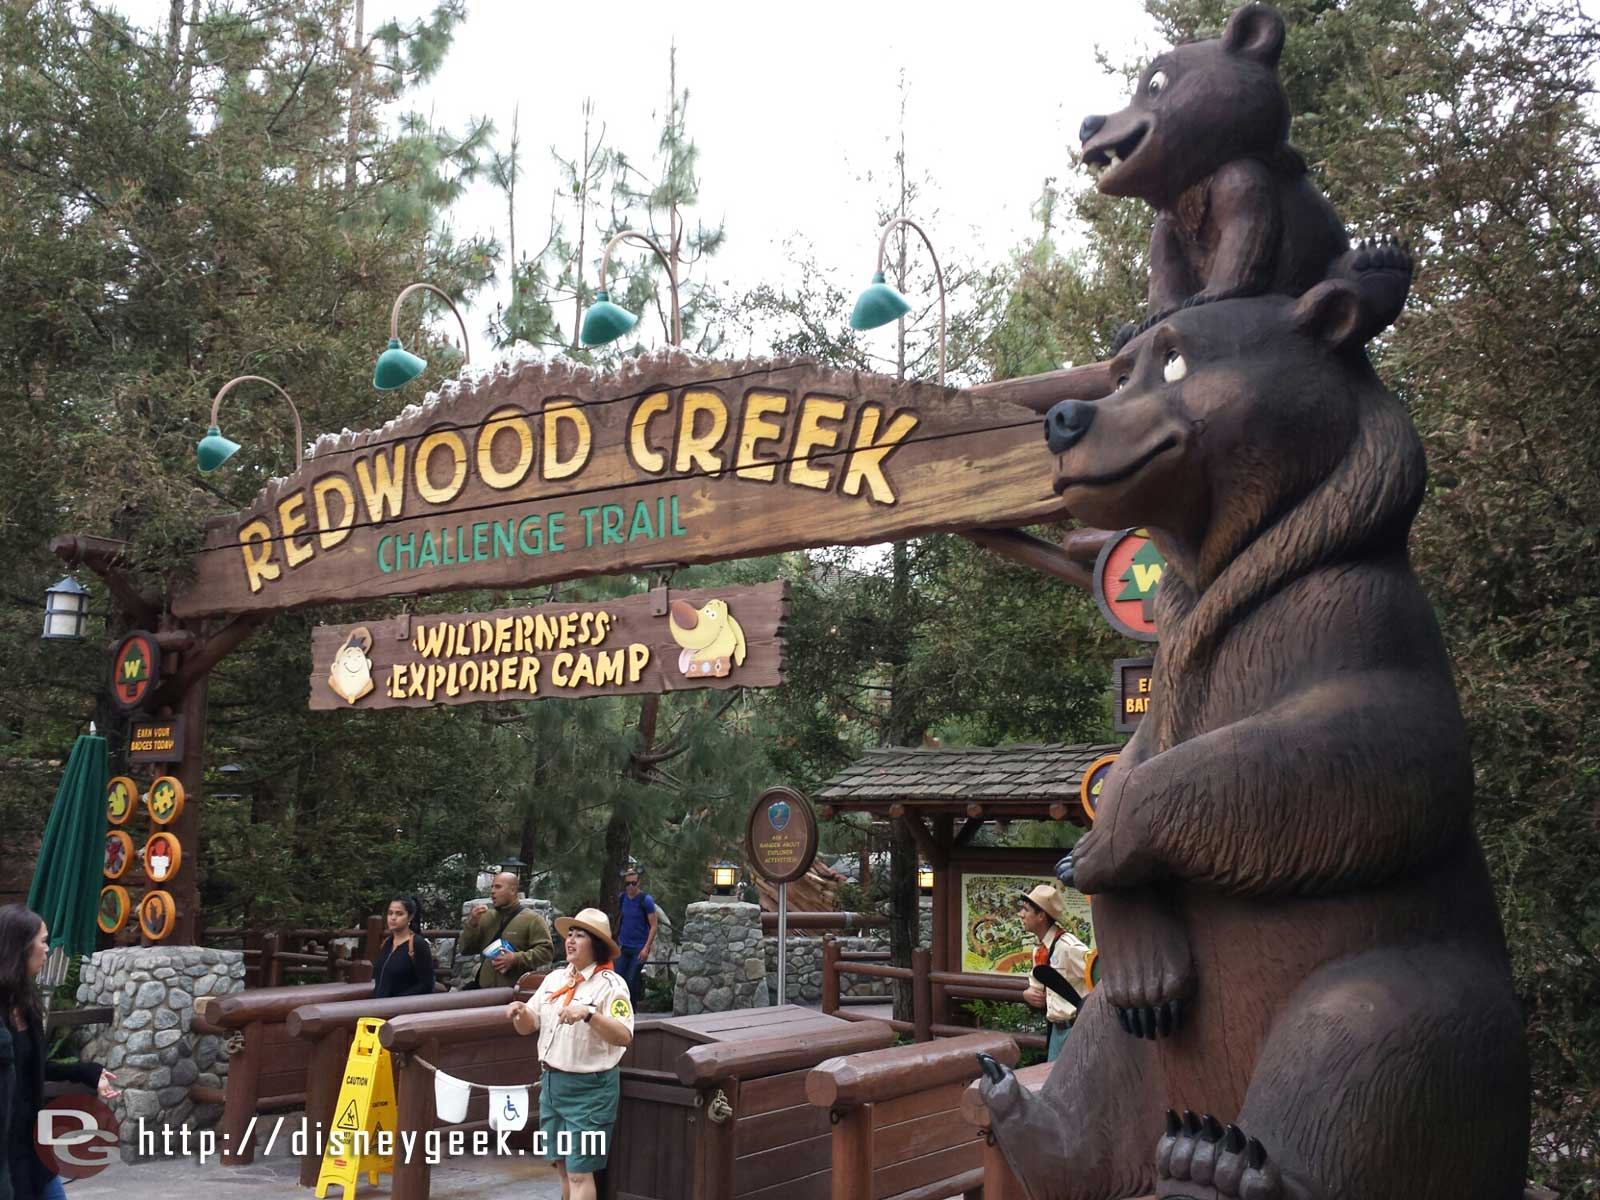 Redwood Creek has reopened since my last visit after its long closure